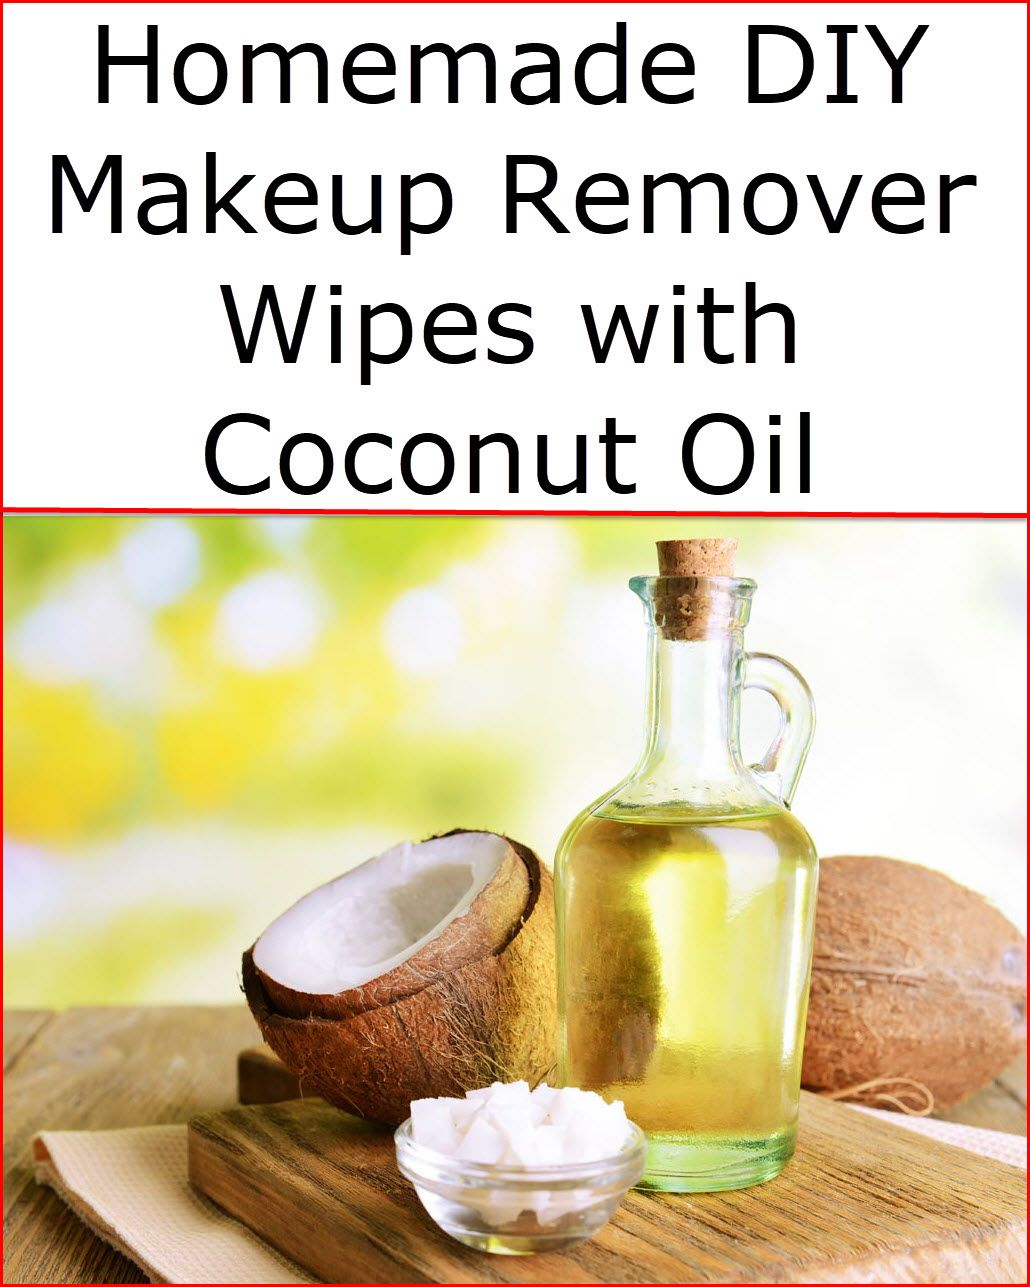 Homemade DIY Makeup Remover Wipes with Coconut Oil Diy